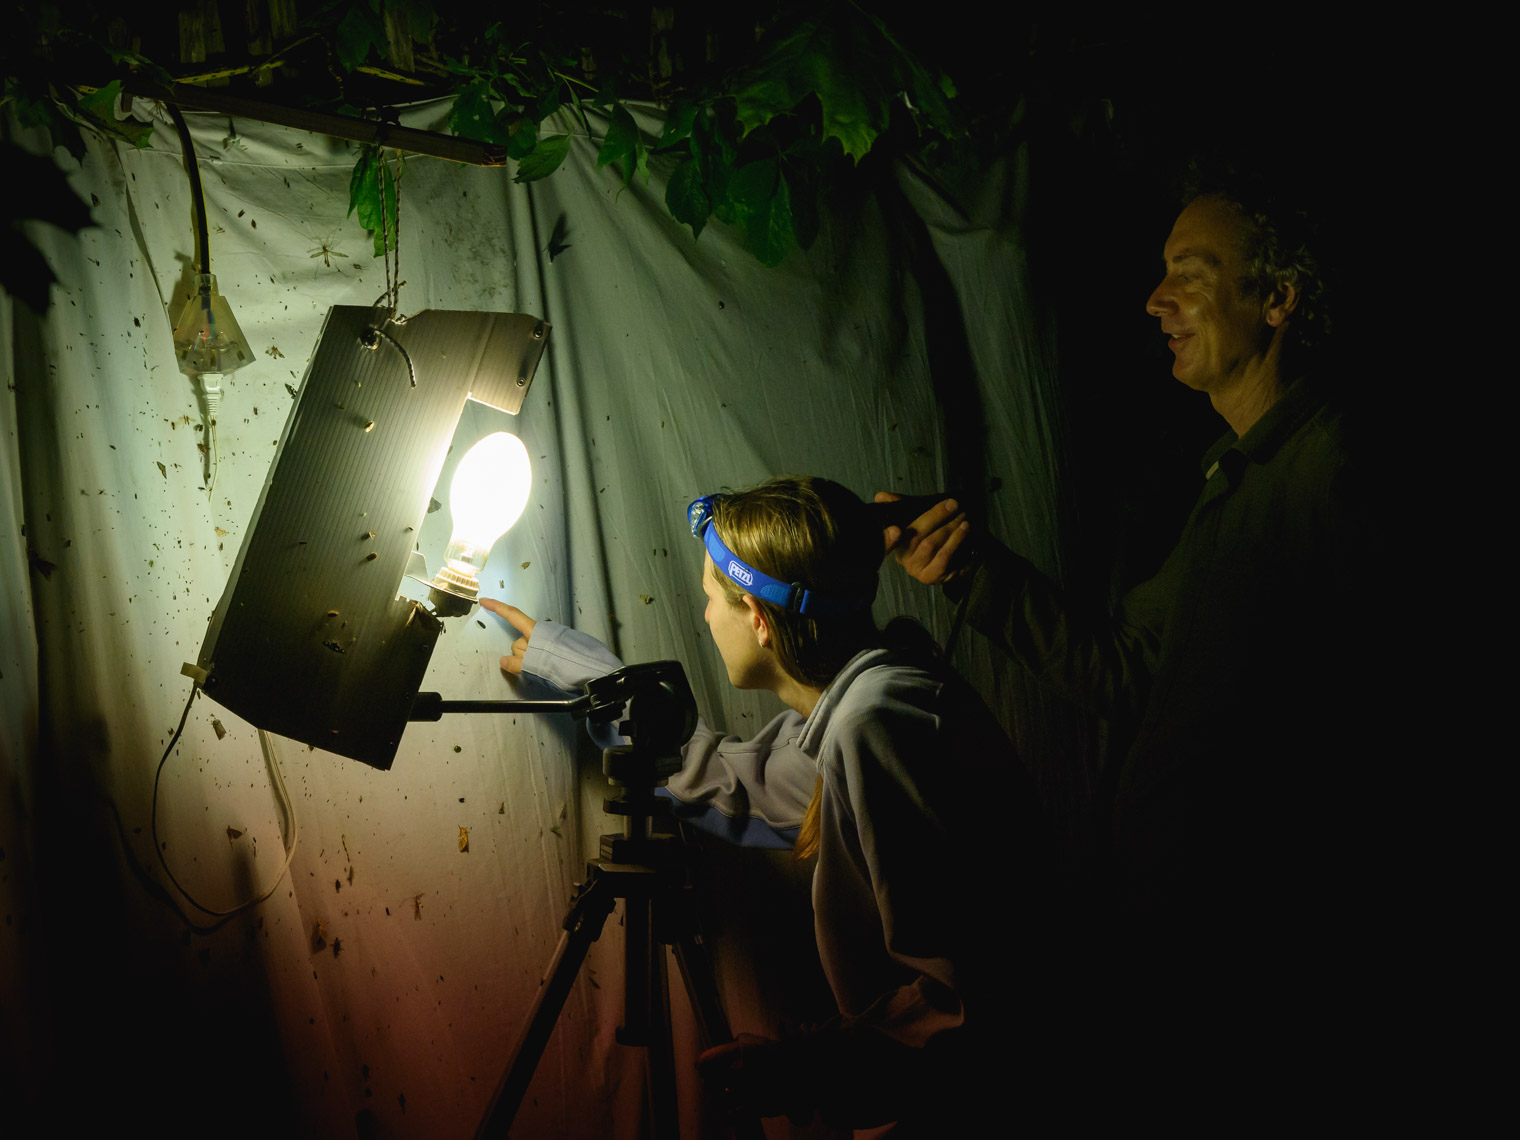 Two people using a white sheet and light to look a moths at night